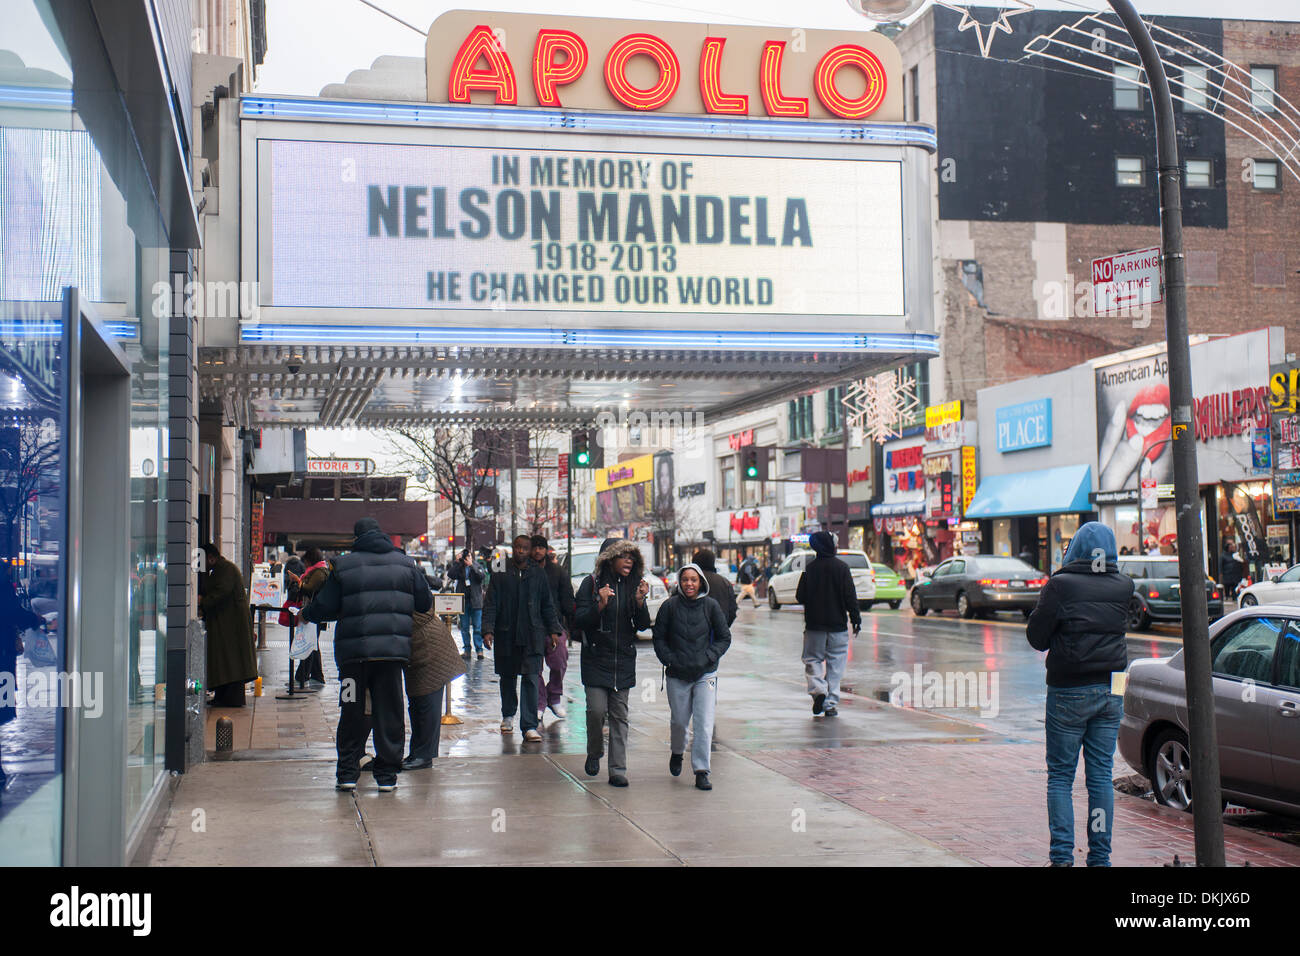 The marquee of the Apollo Theater in Harlem in New York on a rainy Friday, December 6, 2013 shows a memorial to the late Nelson Mandela. The South African civil rights activist passed away at the age of 95. Mandela visited Harlem in 1990 on his first visit to New York. (© Richard B. Levine) - Stock Image